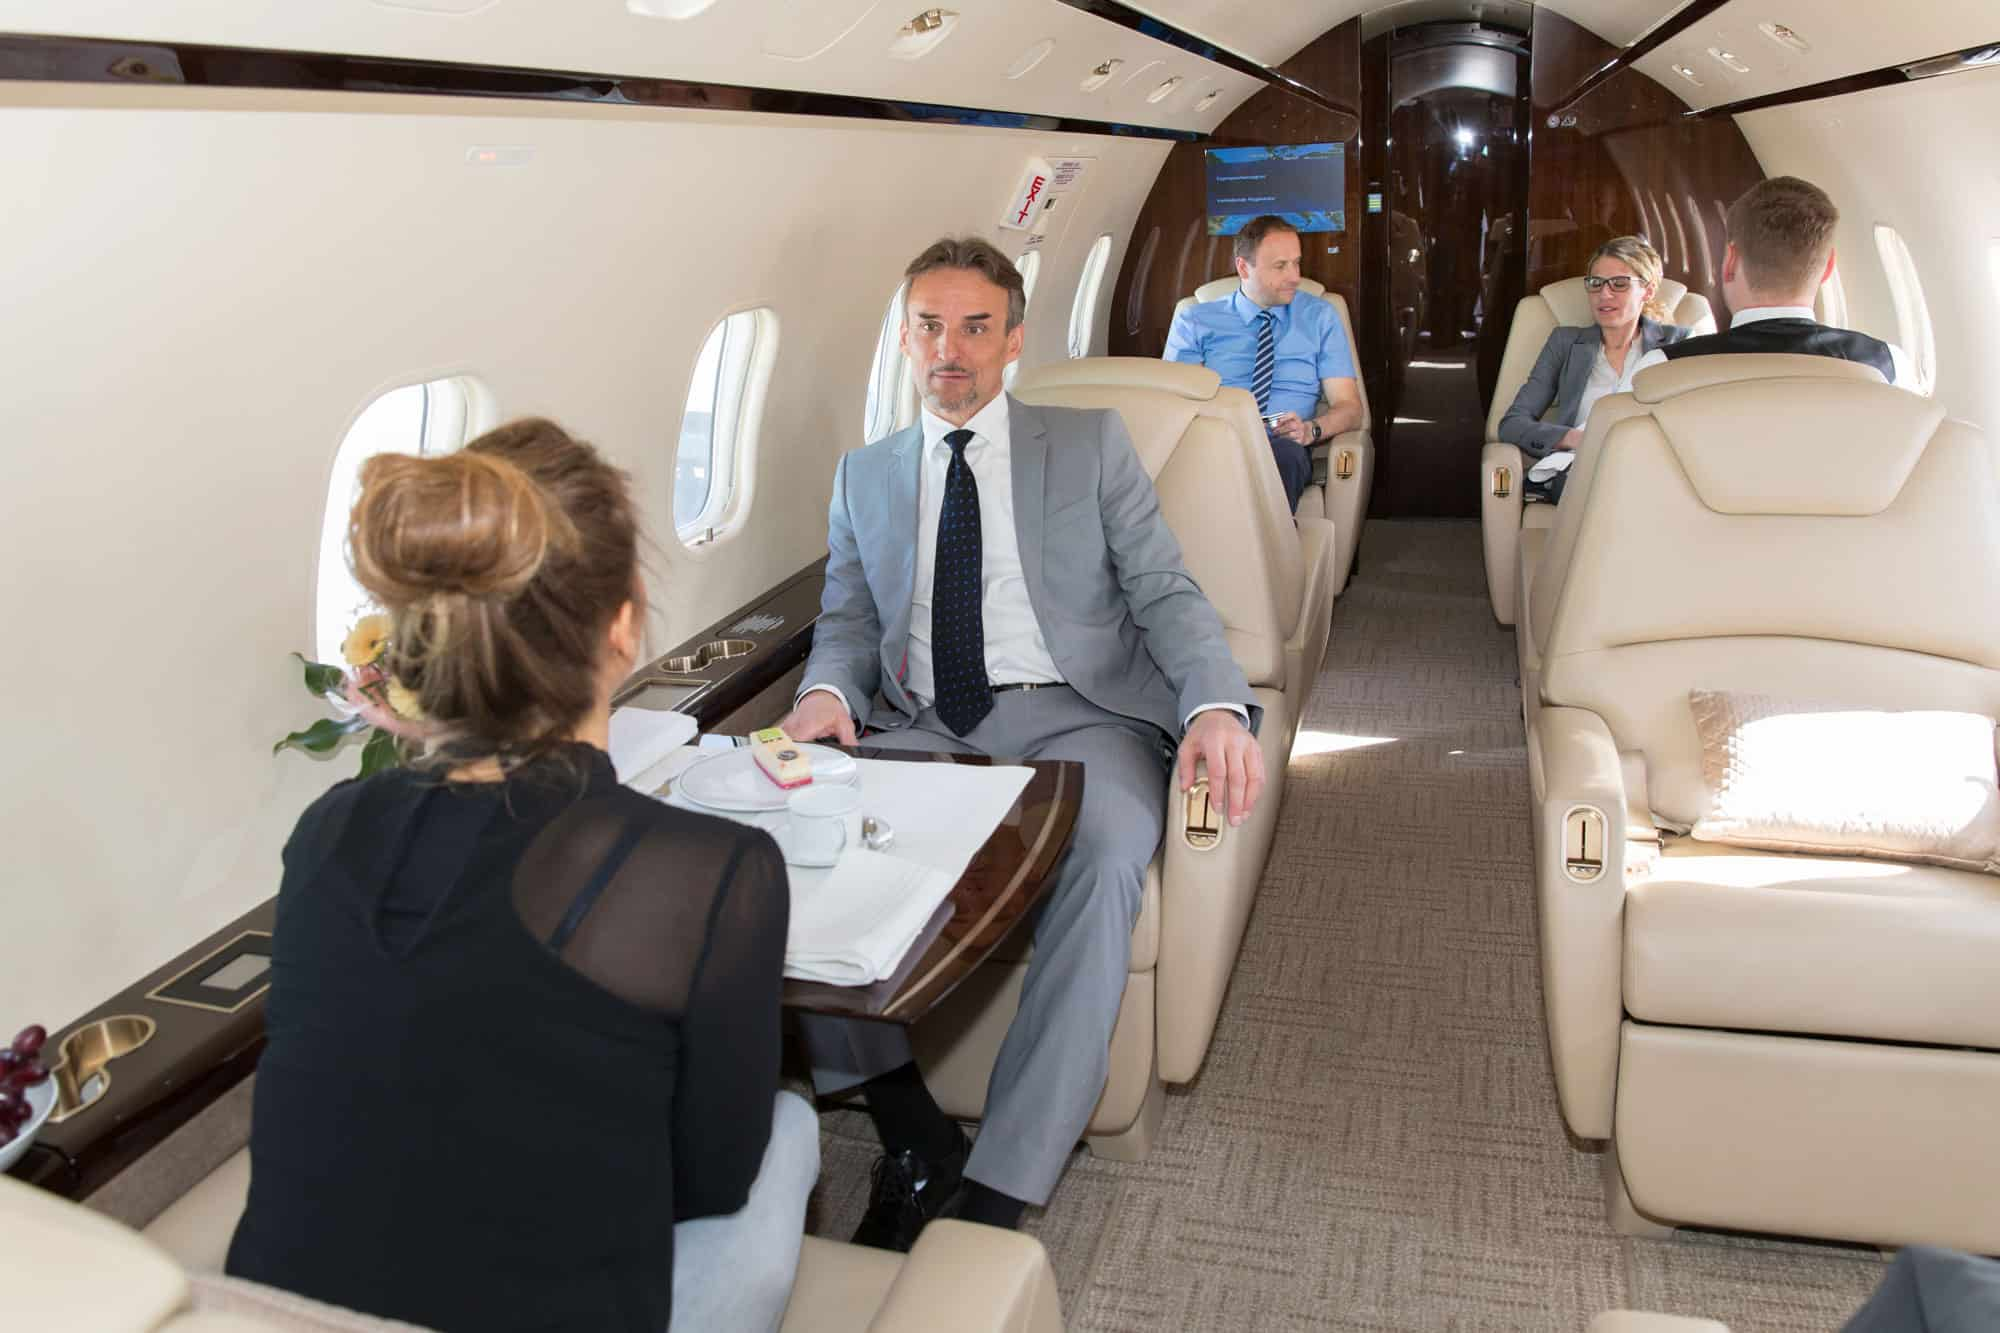 Seating choice on private jets